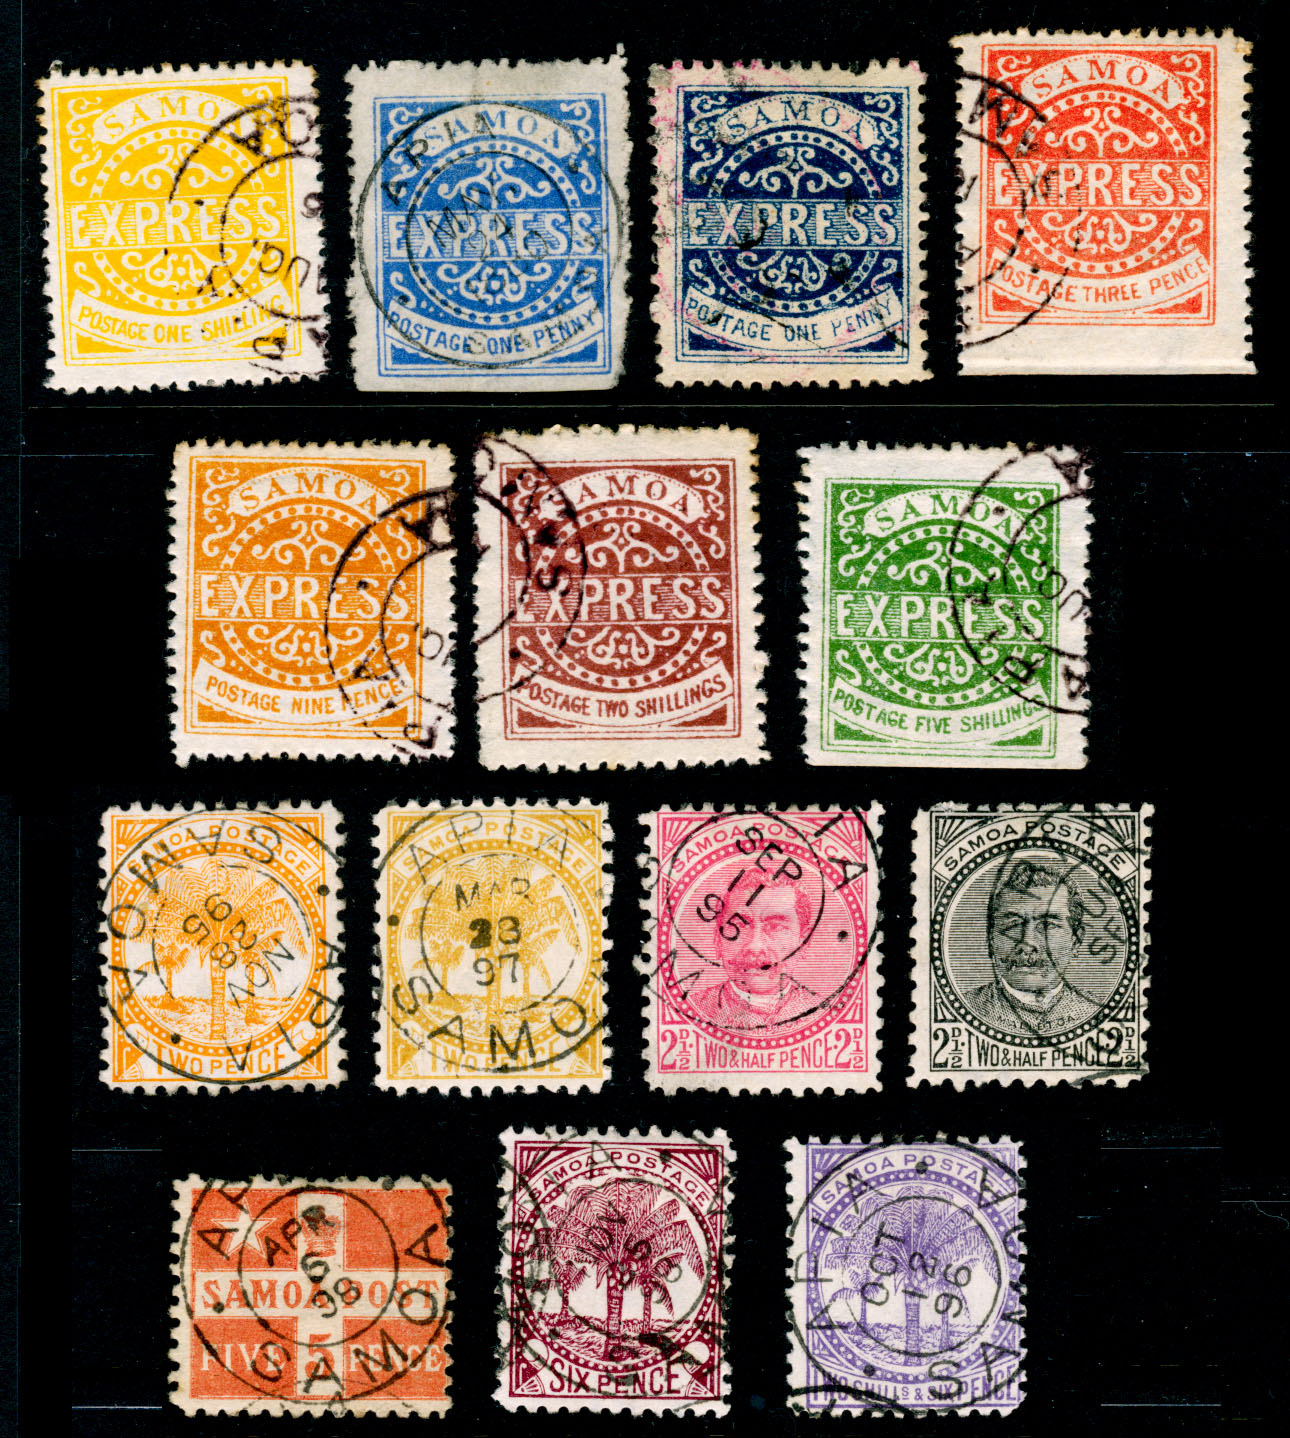 varied stamps on a black background